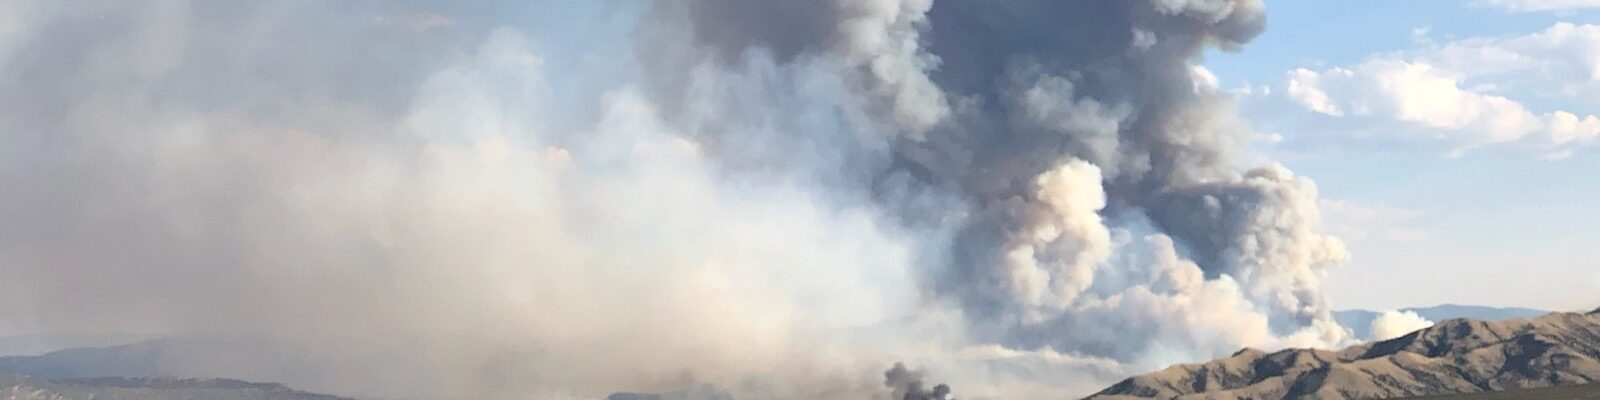 smoke column on Richard Mountain Fire